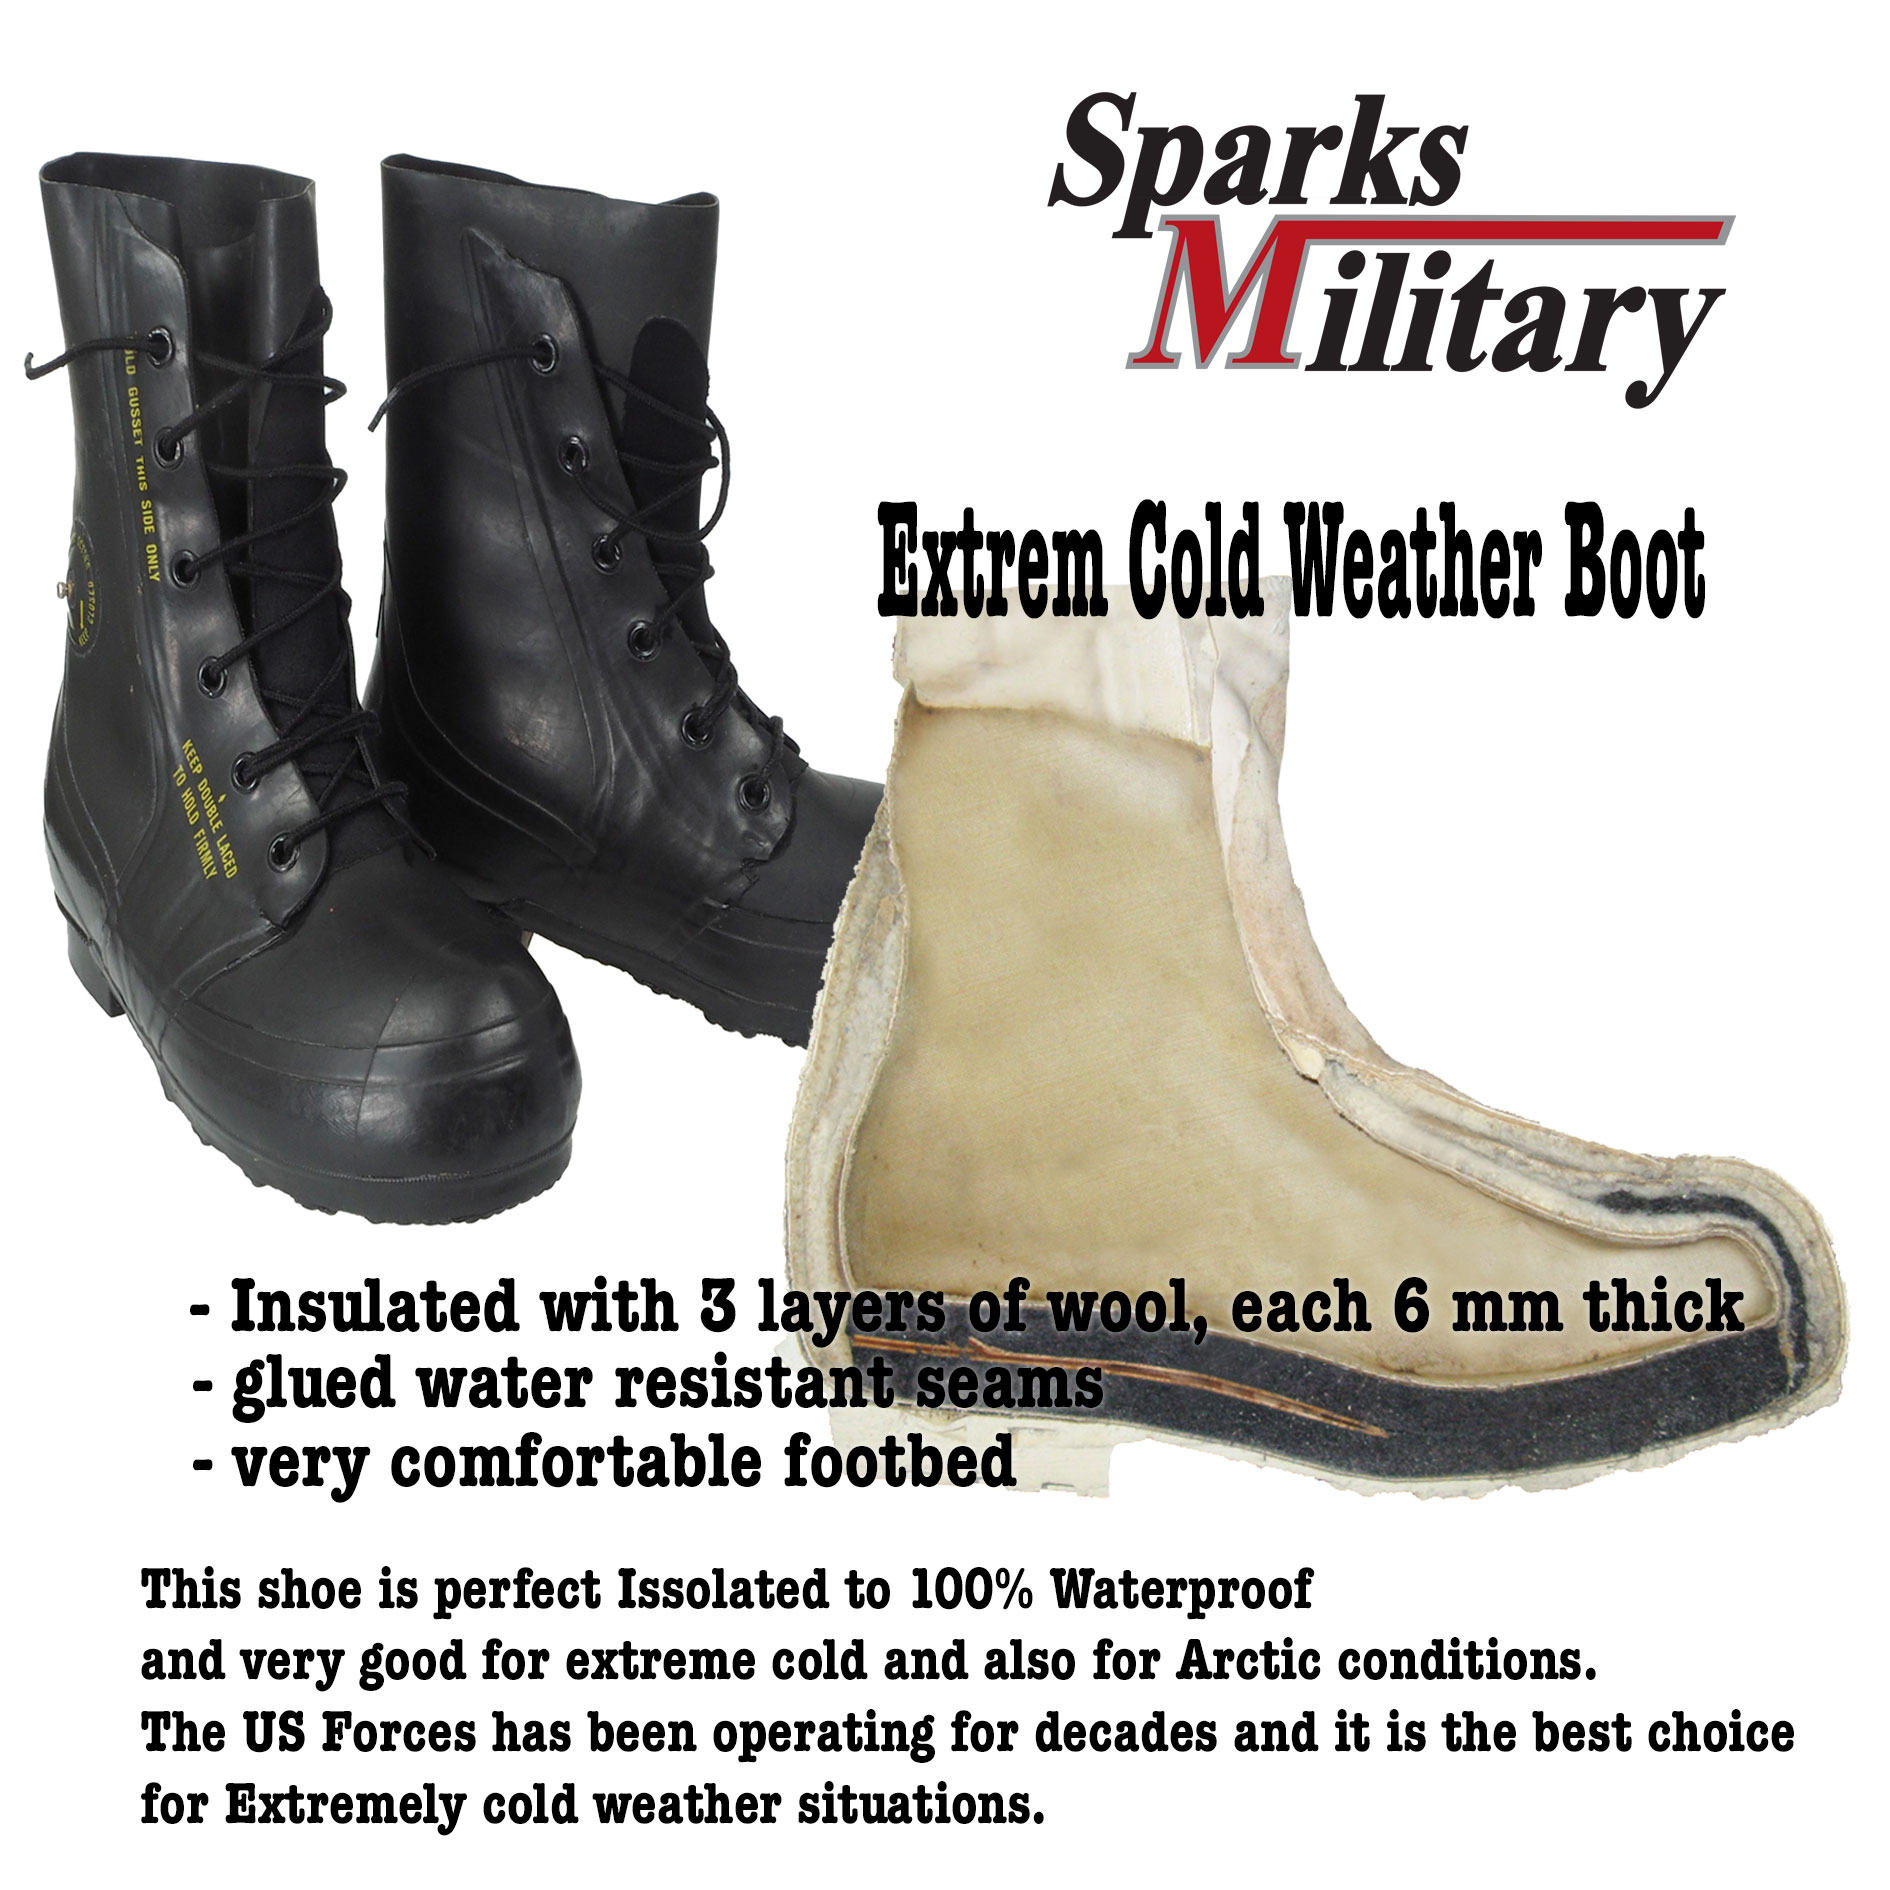 cb9ea56c91a Extreme Cold Weather Boot, Mickey Mouse Boots buy at sparks military